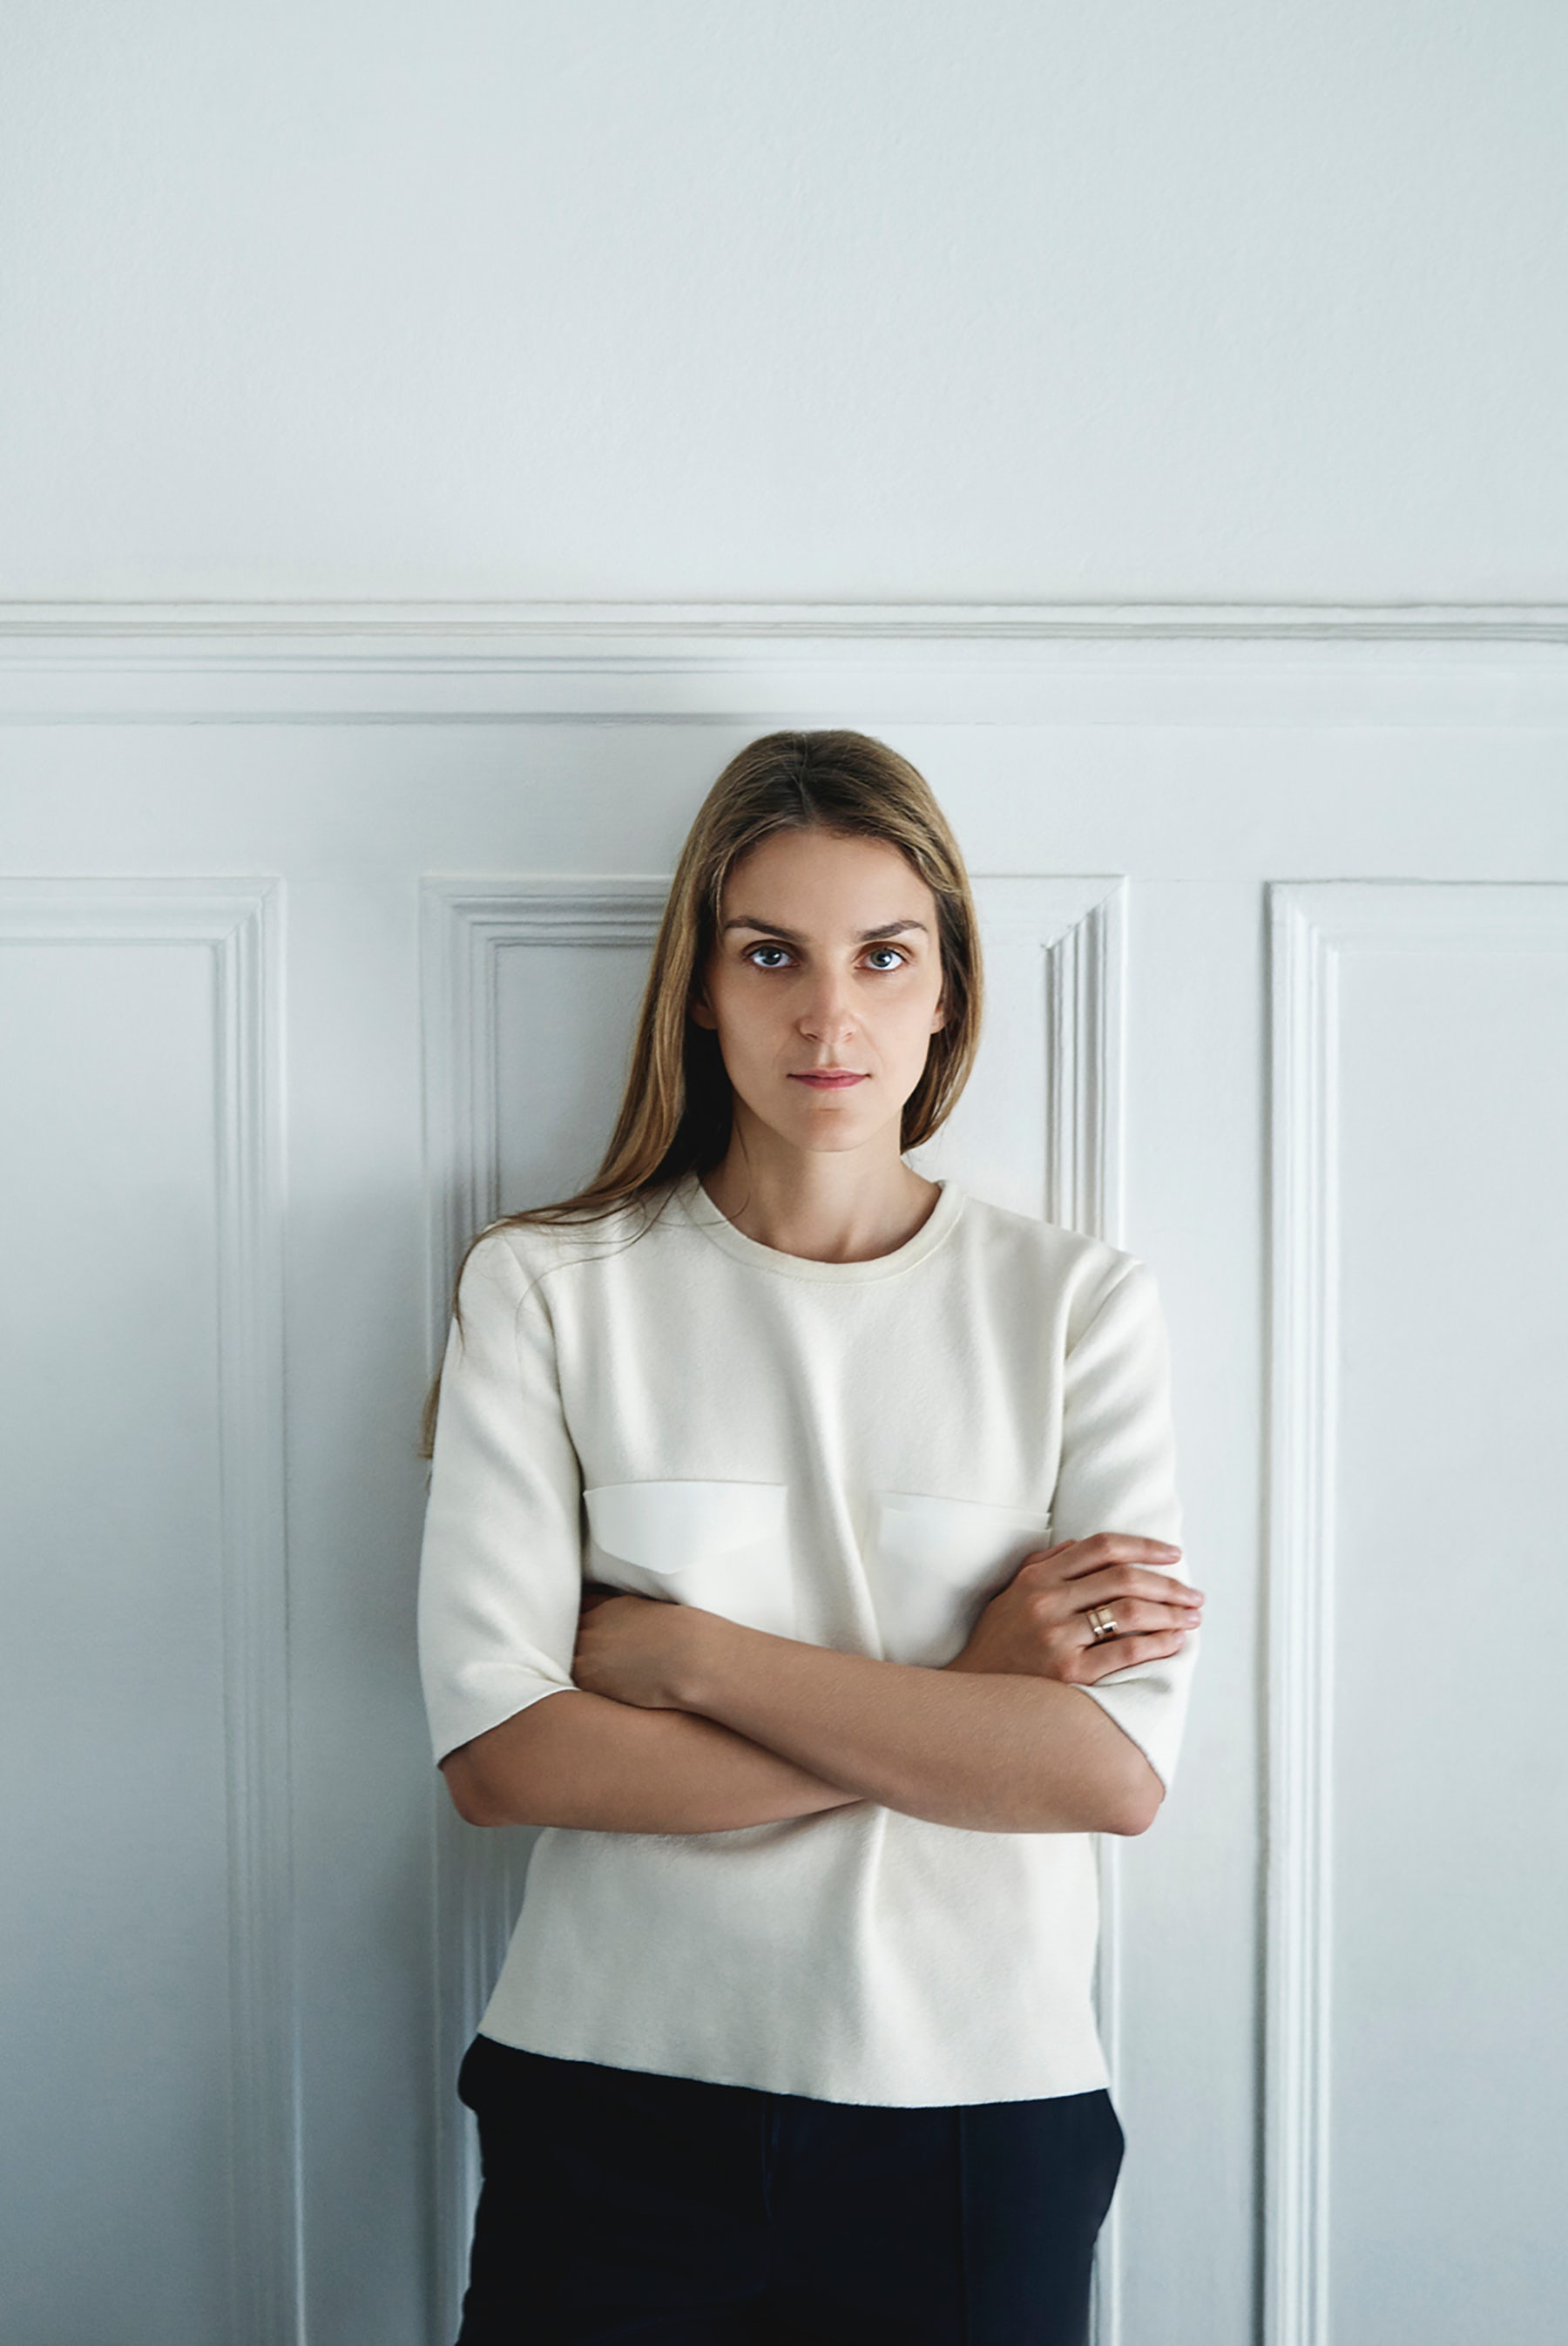 Gaia Repossi in her office | Photo: Antoine Doyen for BoF